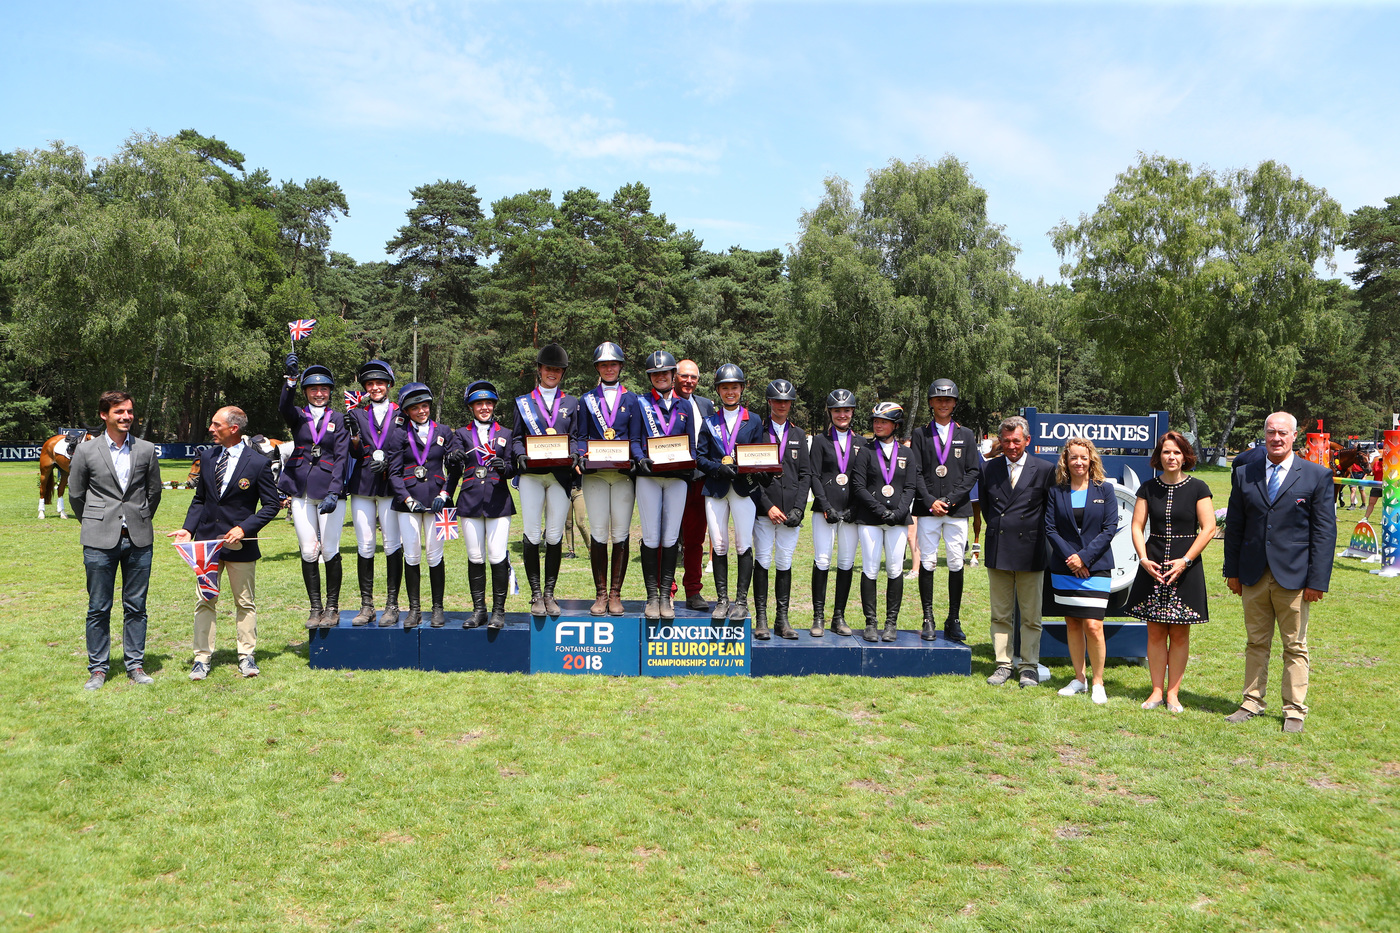 Longines Show Jumping Event: The next generation of athletes showcased in the Longines FEI European Championships CH / J / YR 5